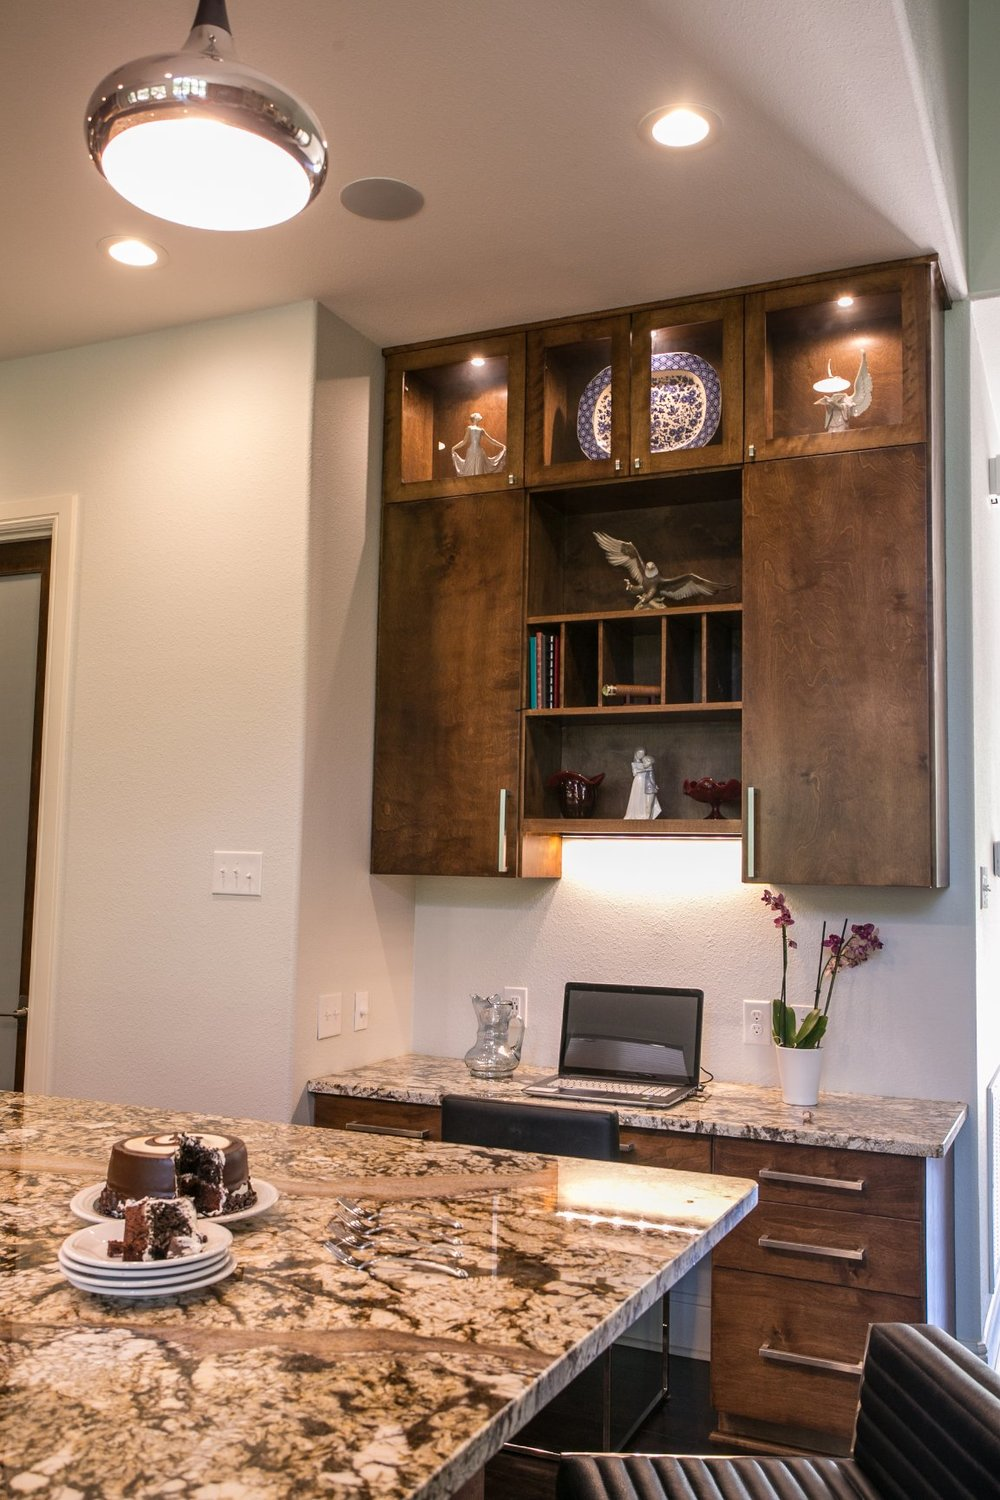 Kitchen with built in storage AND style